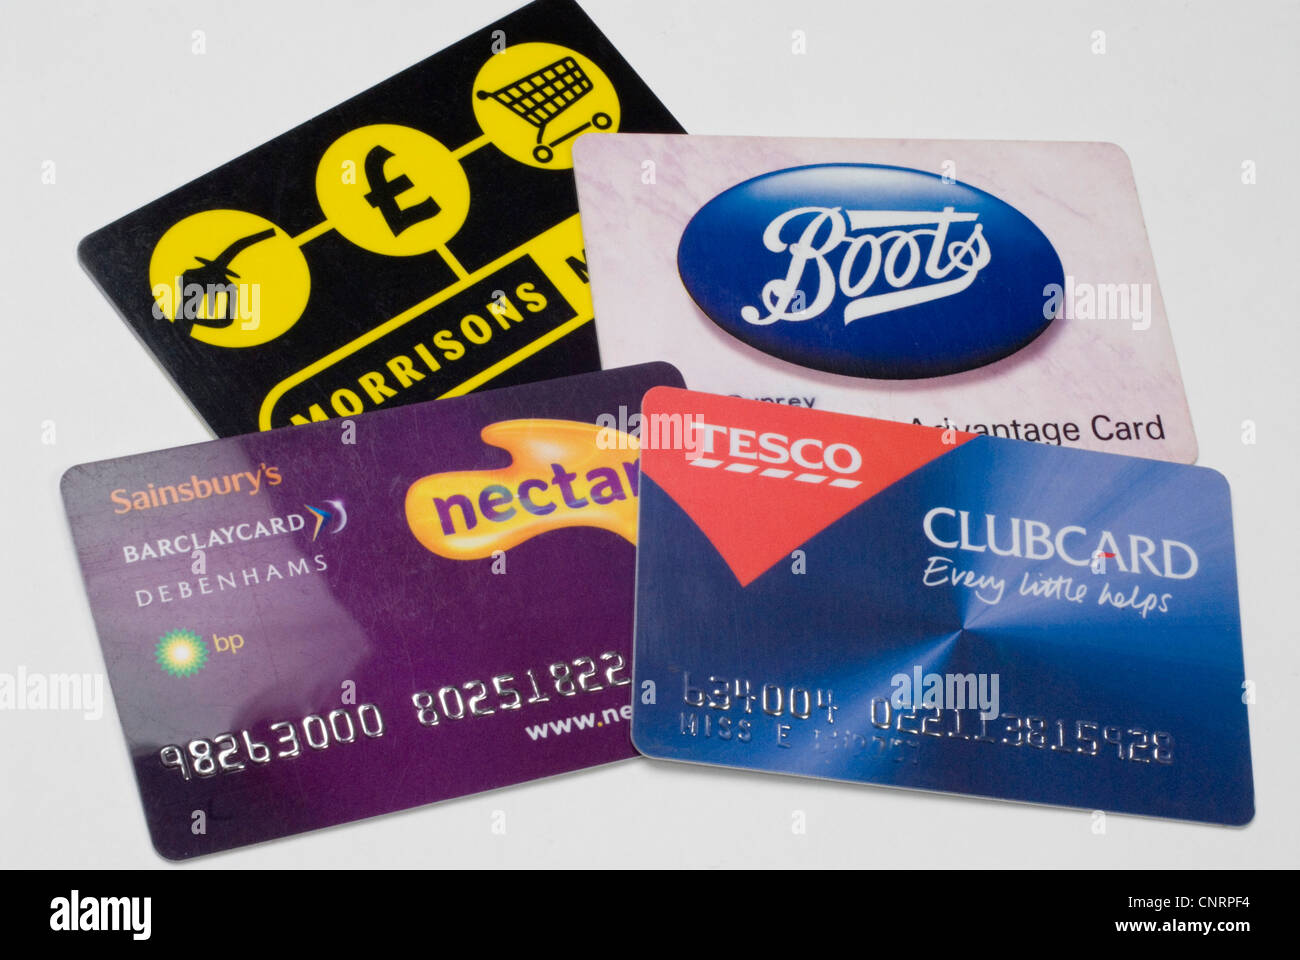 Store Loyalty Cards Stock Photo, Royalty Free Image: 47851080 - Alamy